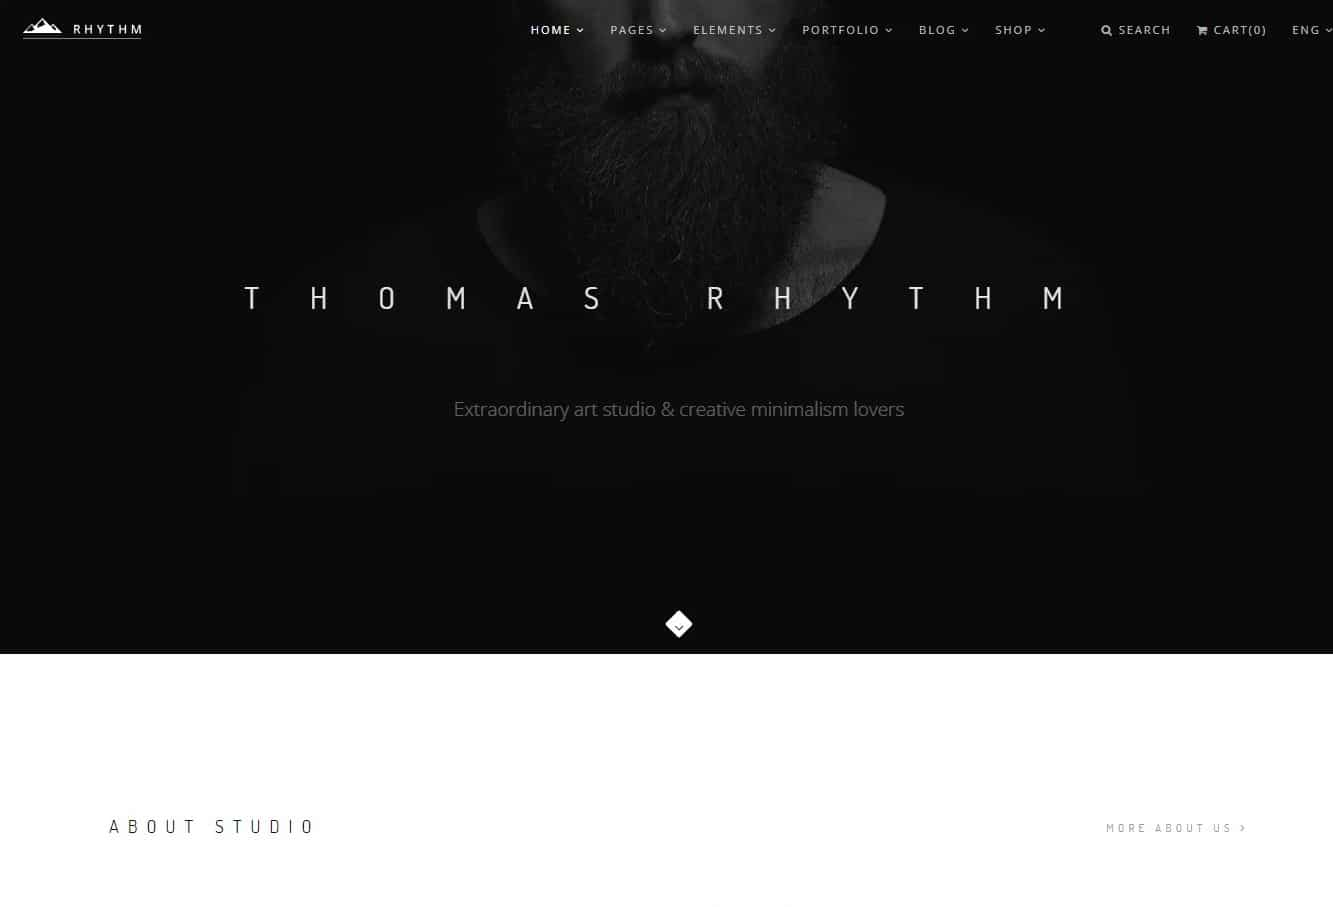 rhythm simple website template